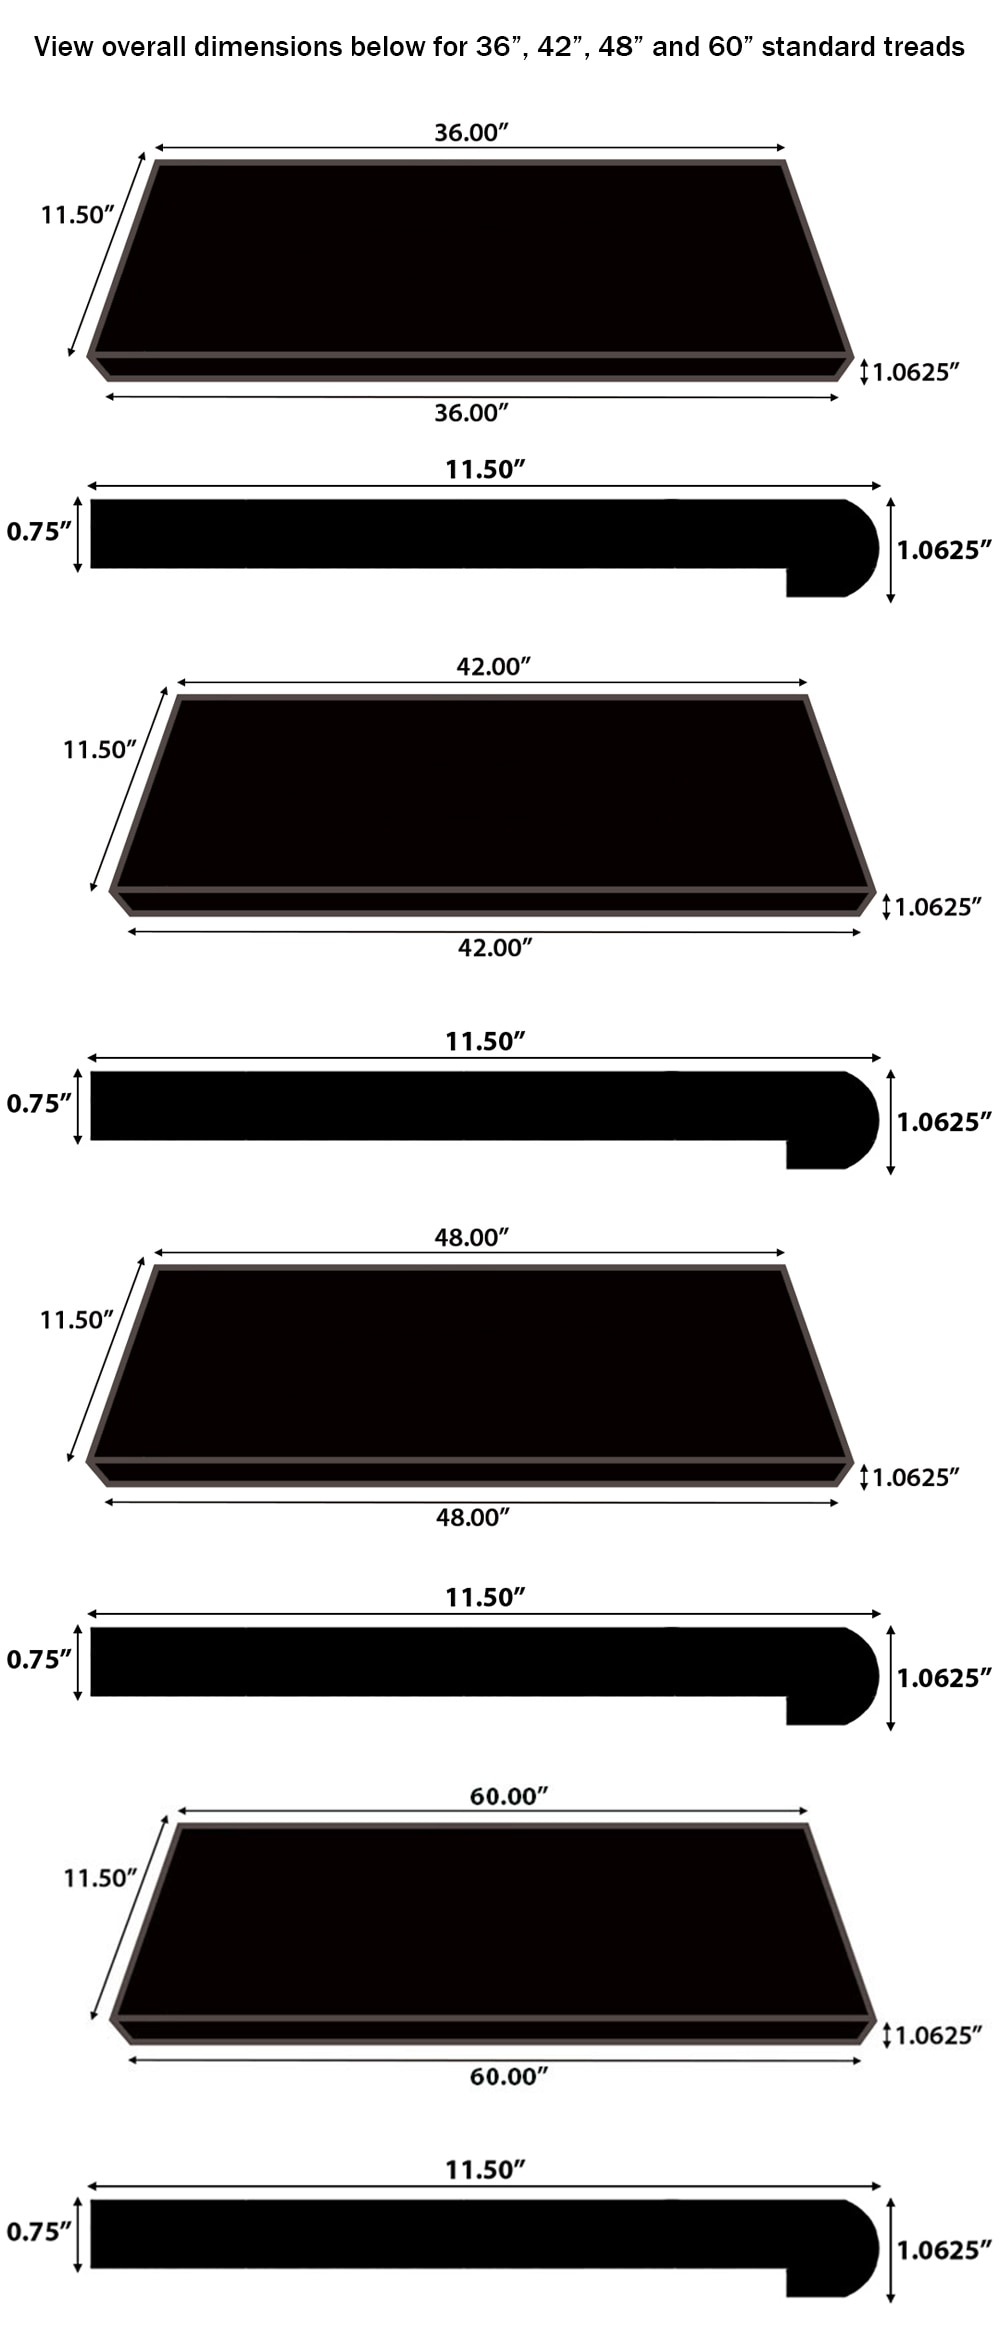 """Graphite / TREAD STANDARD NO RETURN 48 / 48"""" x 11.5"""" x 0.75"""" / Wire Brushed Hardwood Moldings - Canadian Wirebrushed Red Oak Collection 0"""